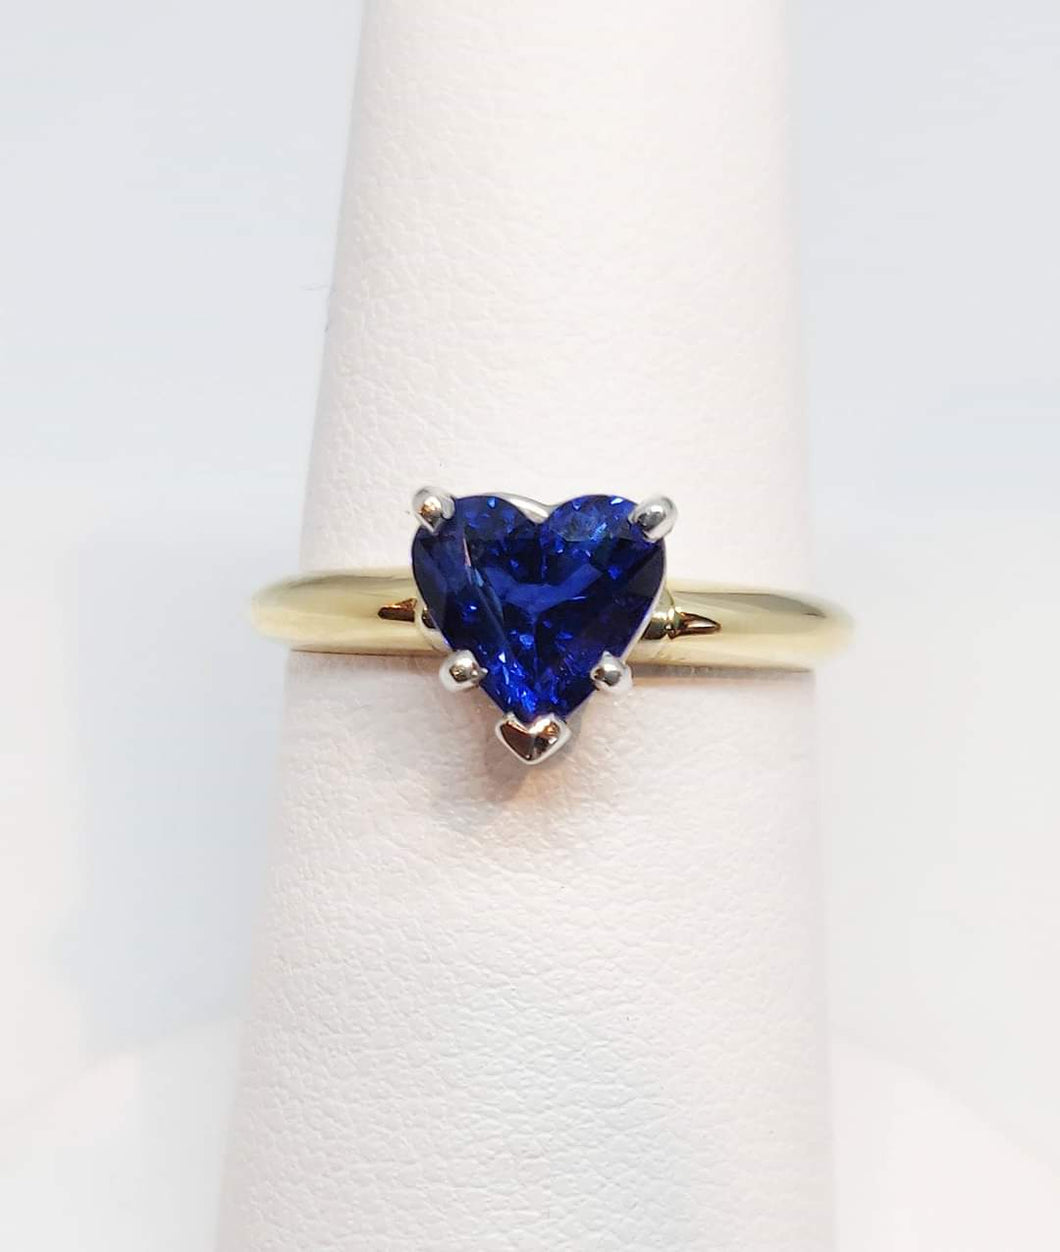 Blue topaz heart shaped solitaire ring